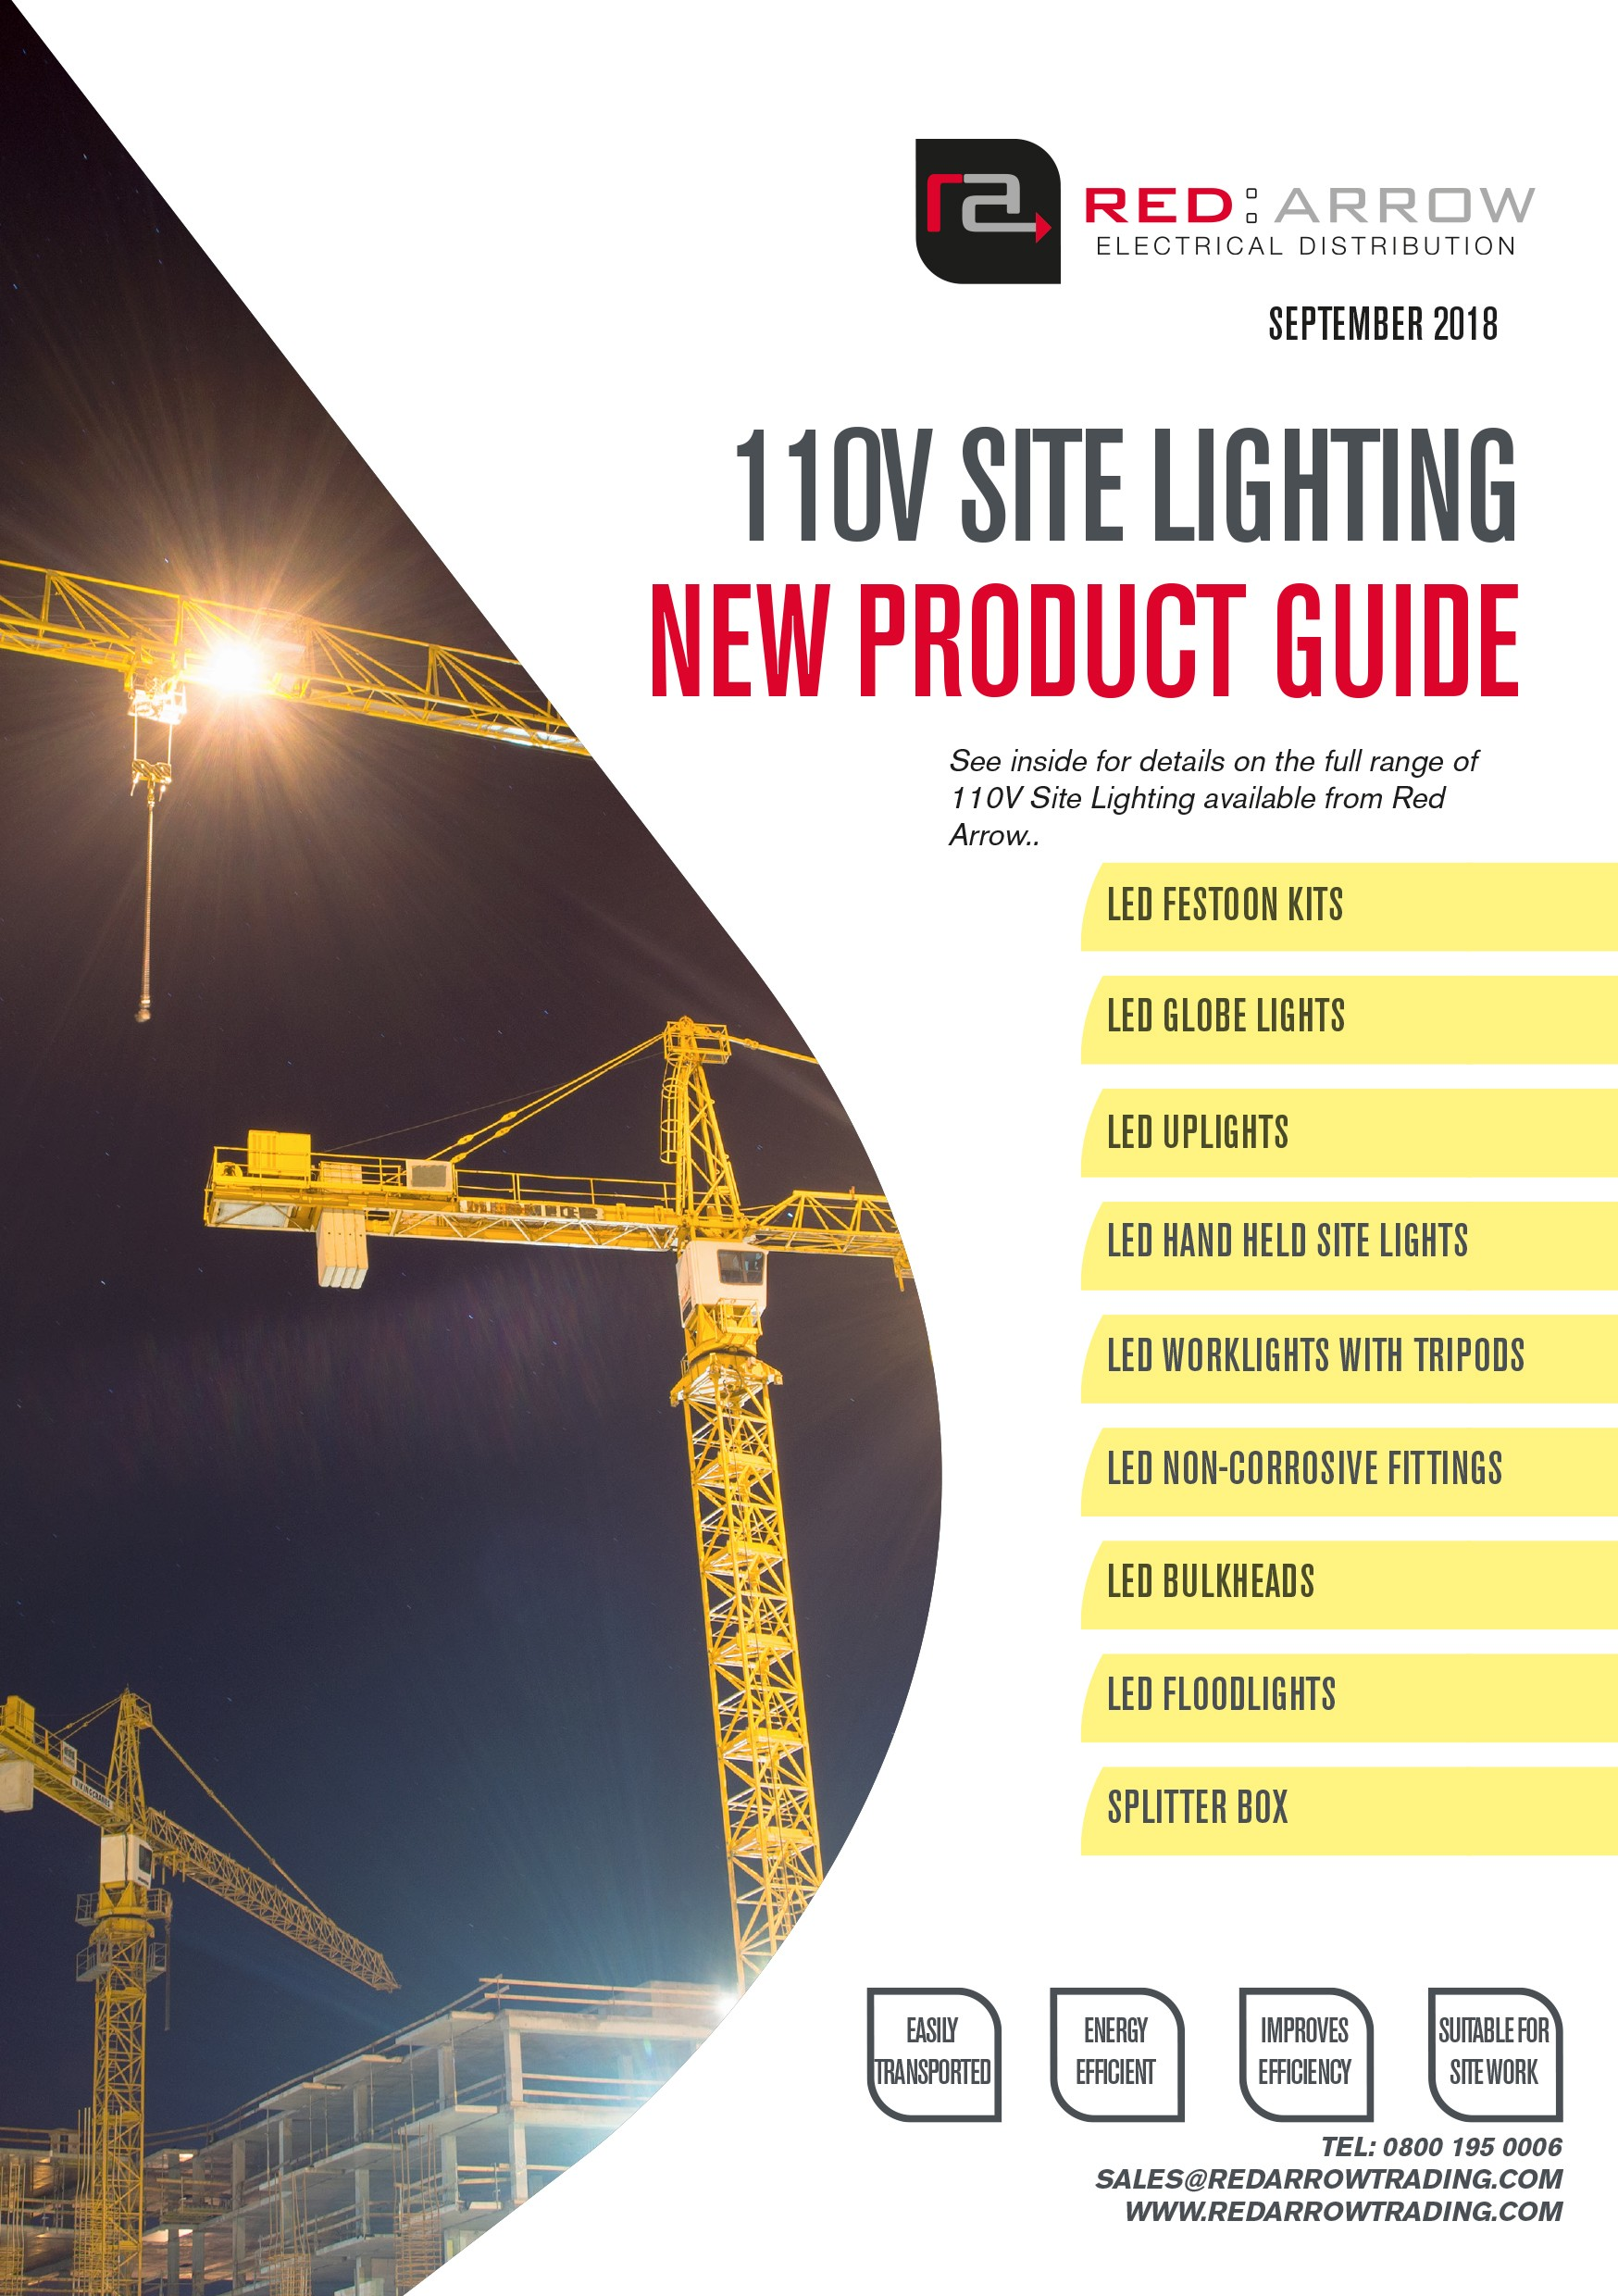 RED ARROW LAUNCHES THE NEW 110V SITE LIGHTING CATALOGUE!